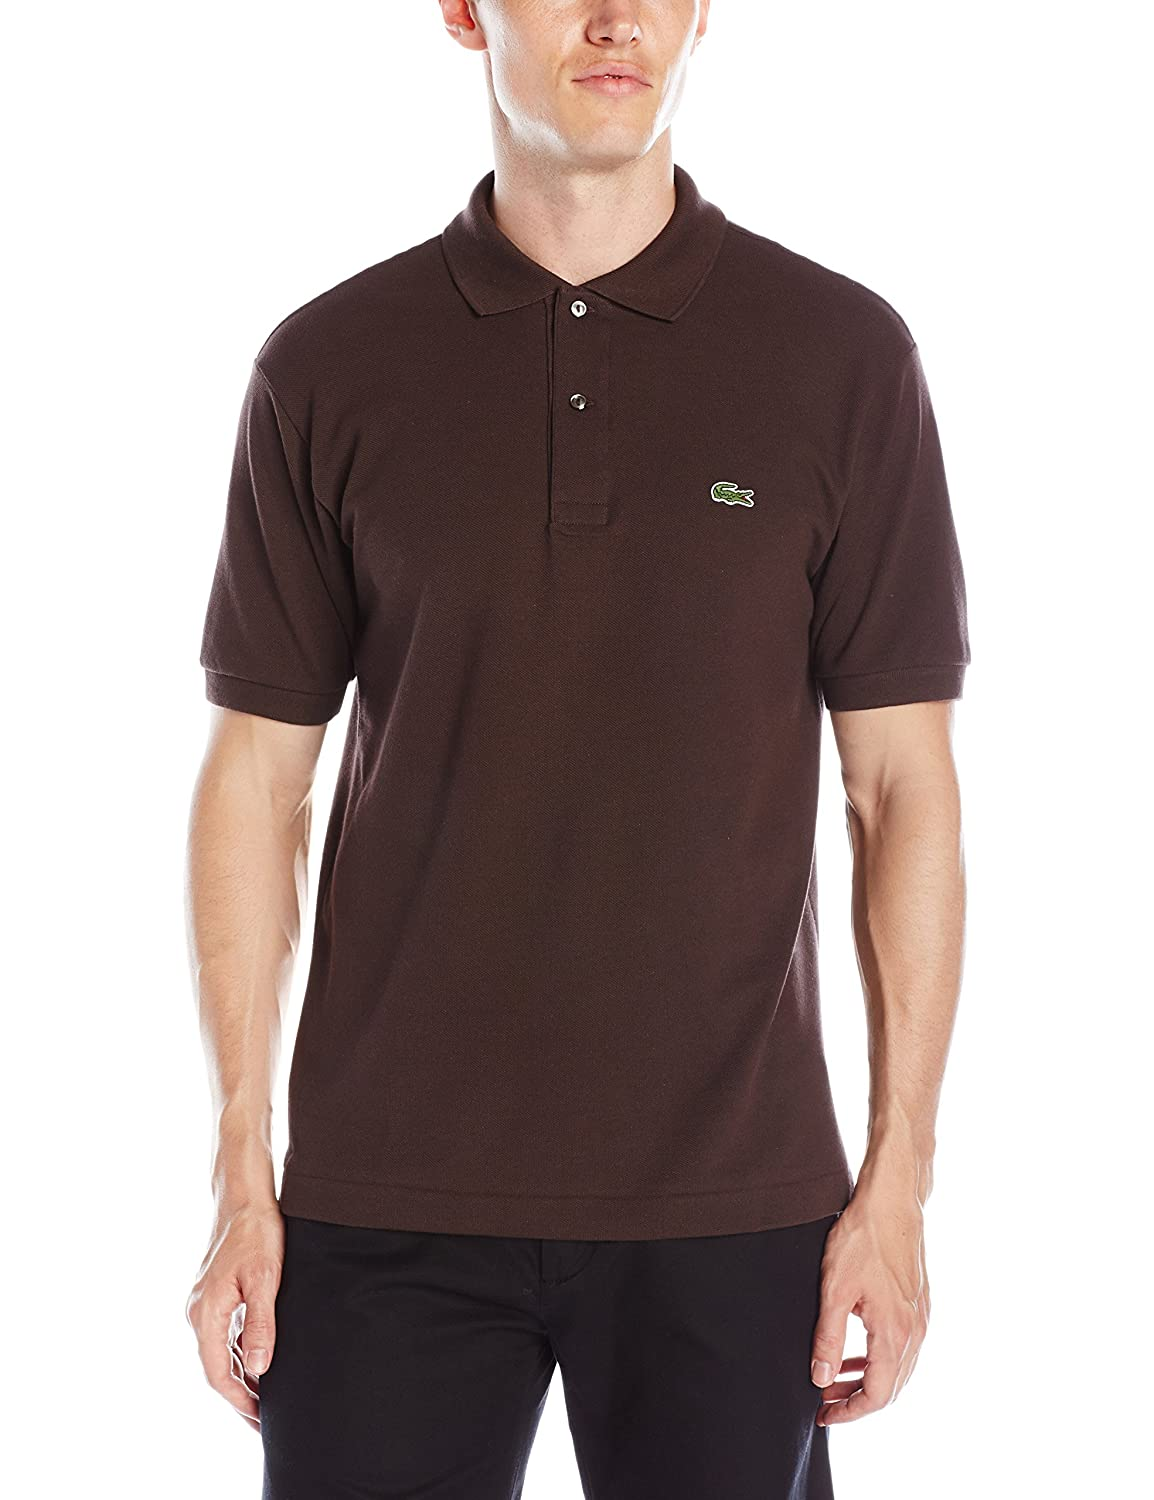 33daf27cf3f Original Lacoste Polo Shirt Price Philippines – EDGE Engineering and ...